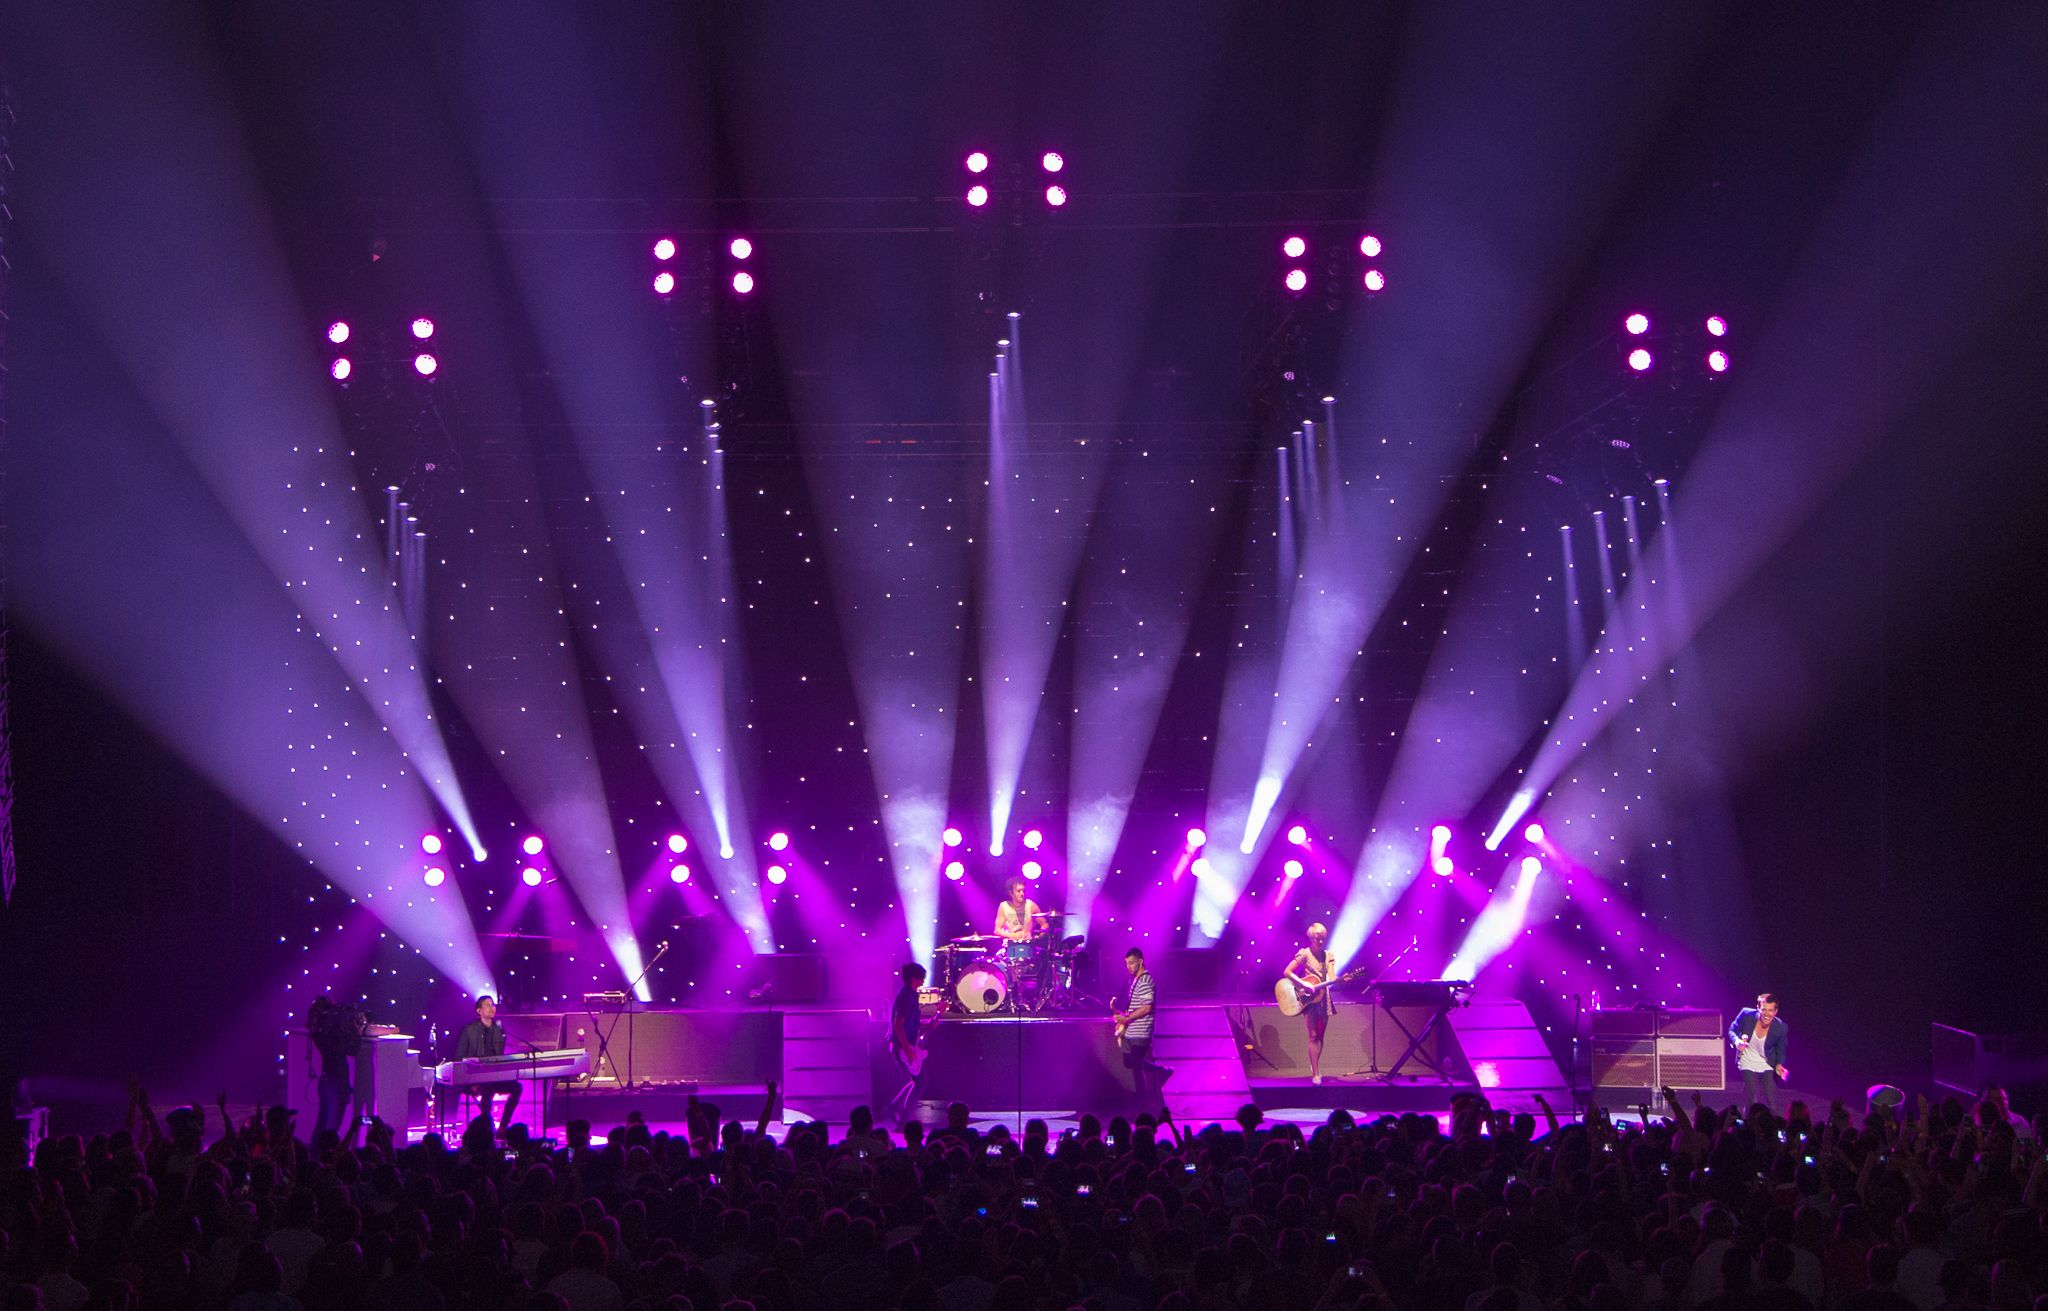 Pin By H 1 On Stage Lighting In 2019 Led